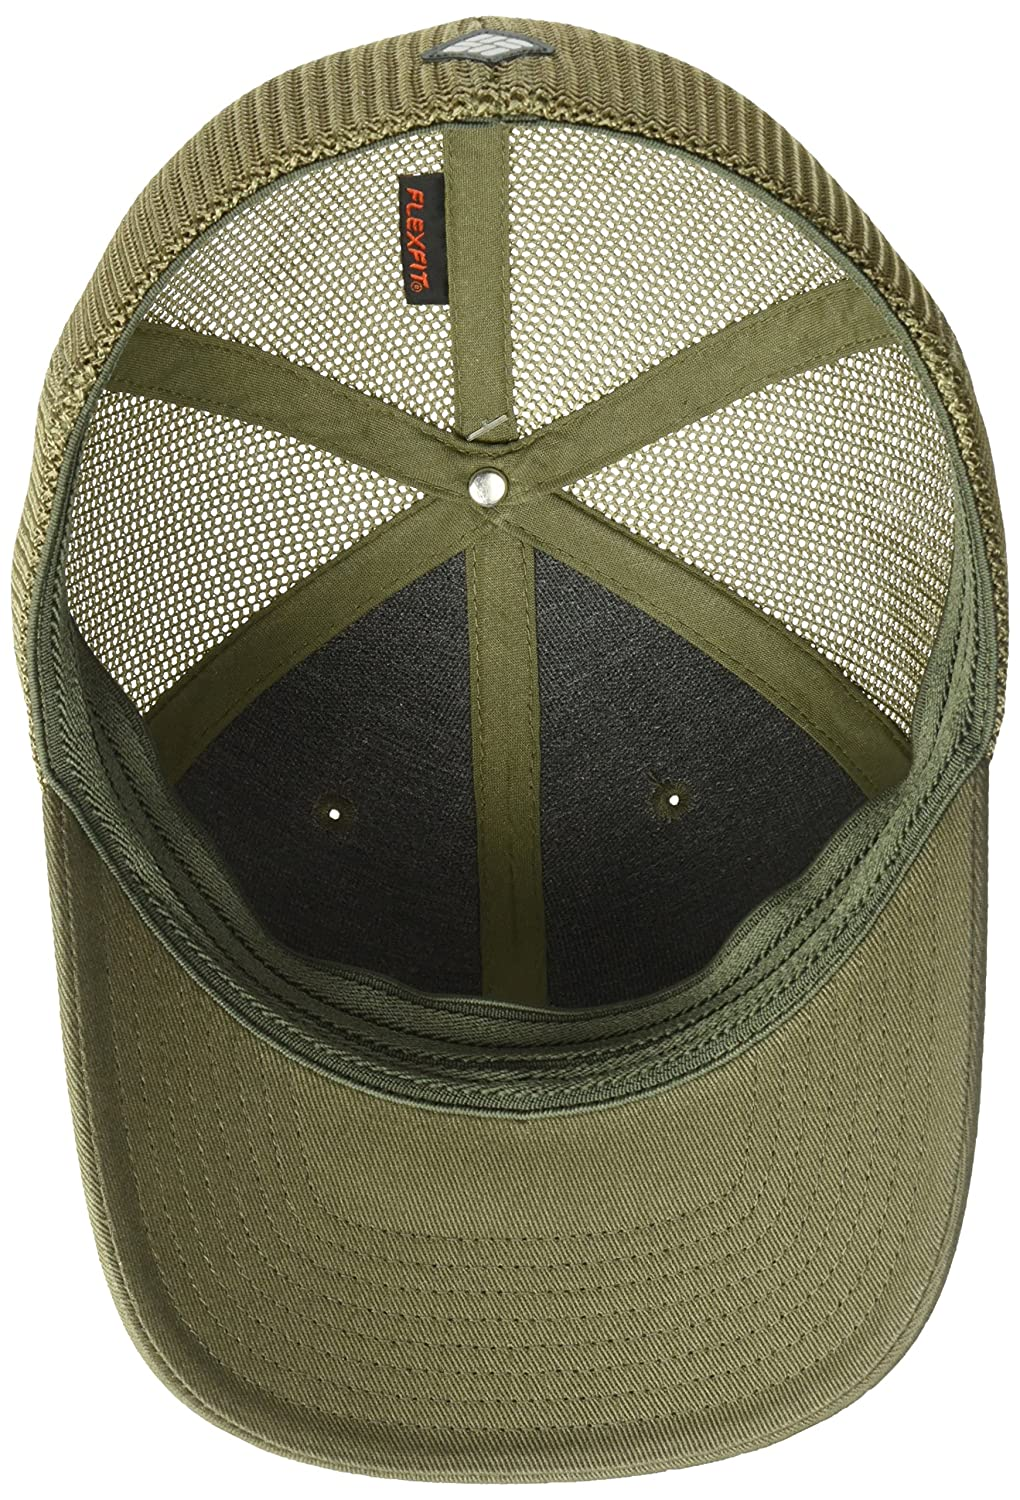 Columbia Men s Rugged Outdoor Mesh Hat at Amazon Men s Clothing store  0910b770d8e9